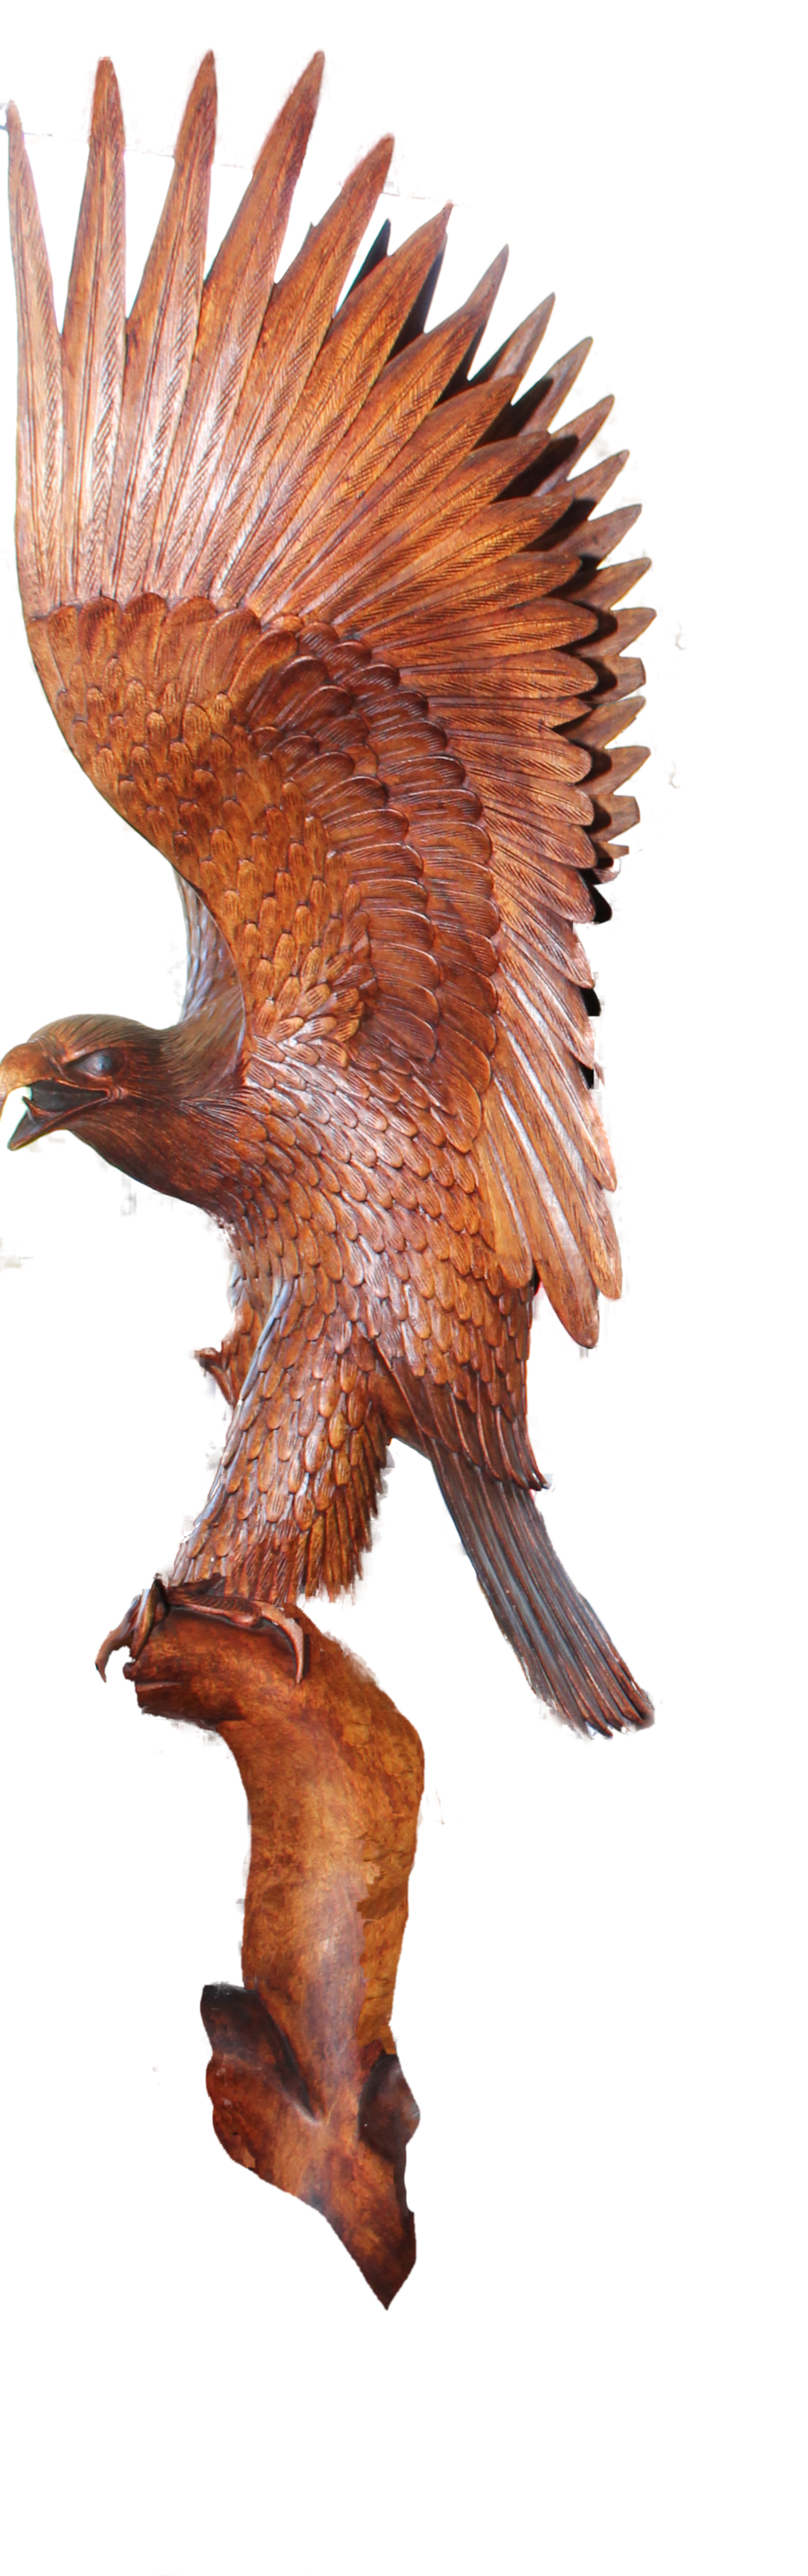 Wood carvings of eagle heads carving by